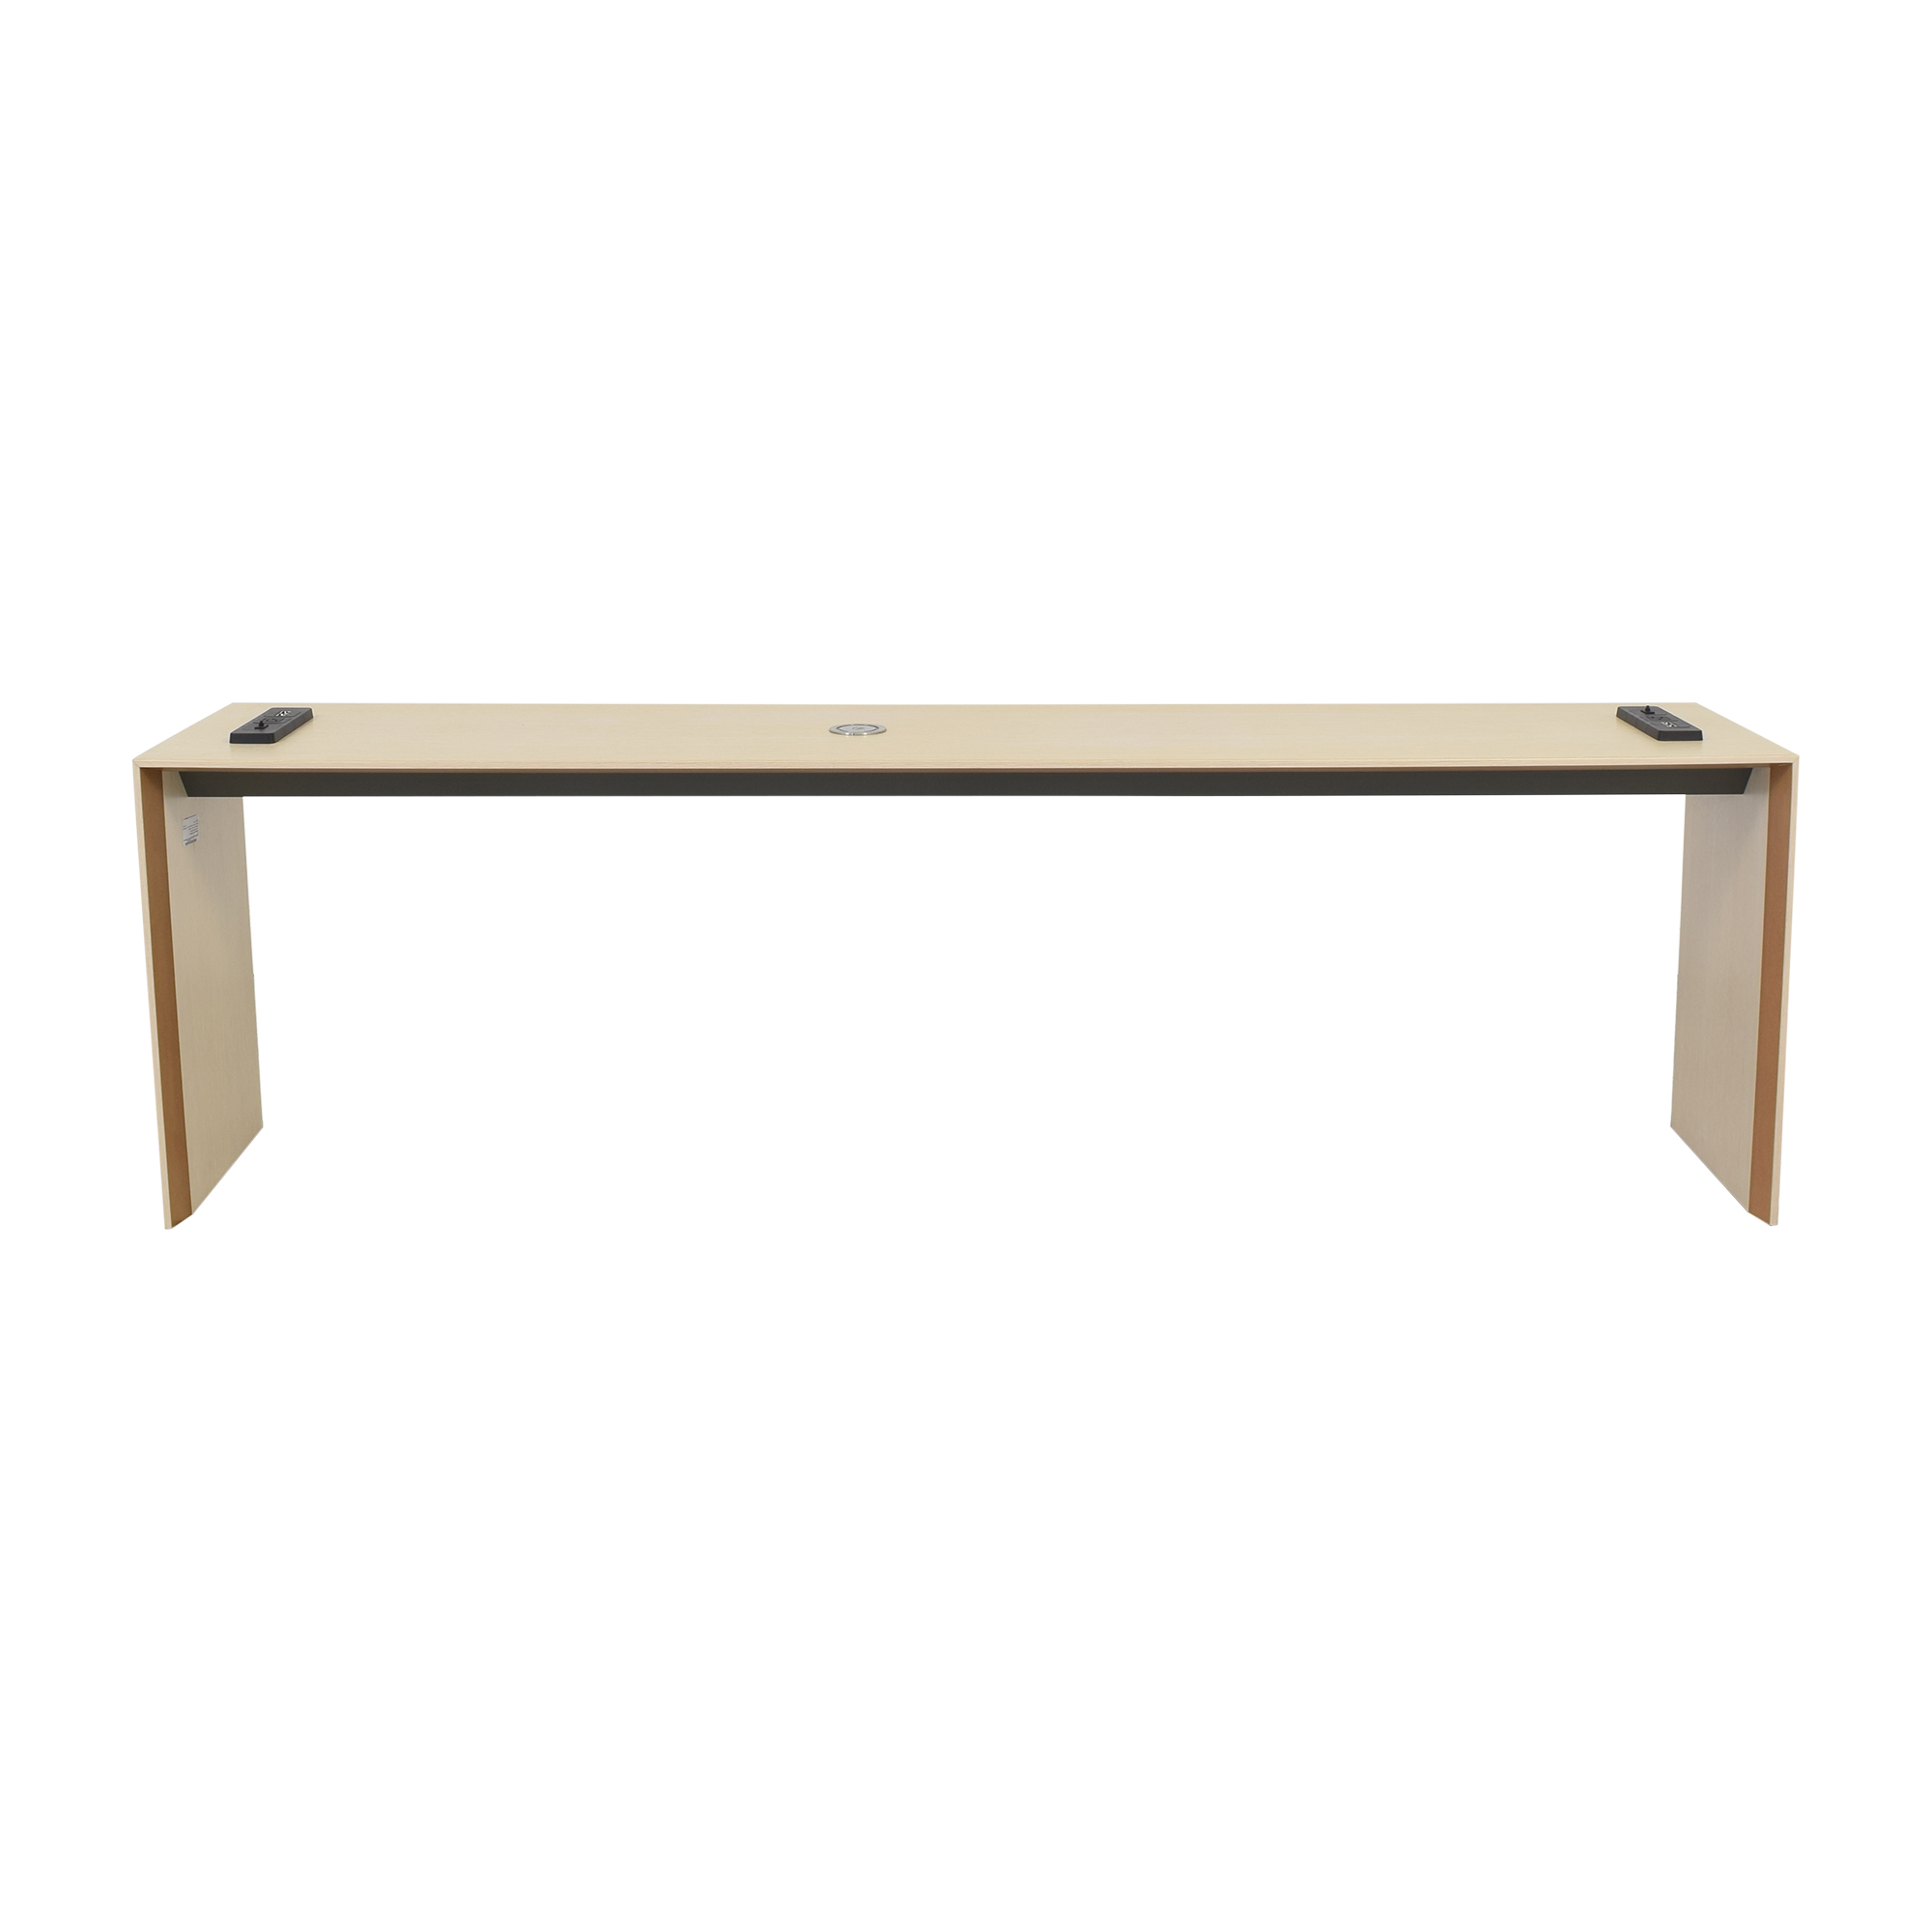 Koleksiyon Koleksiyon Ray Accent Table or Narrow Coffee Table for sale